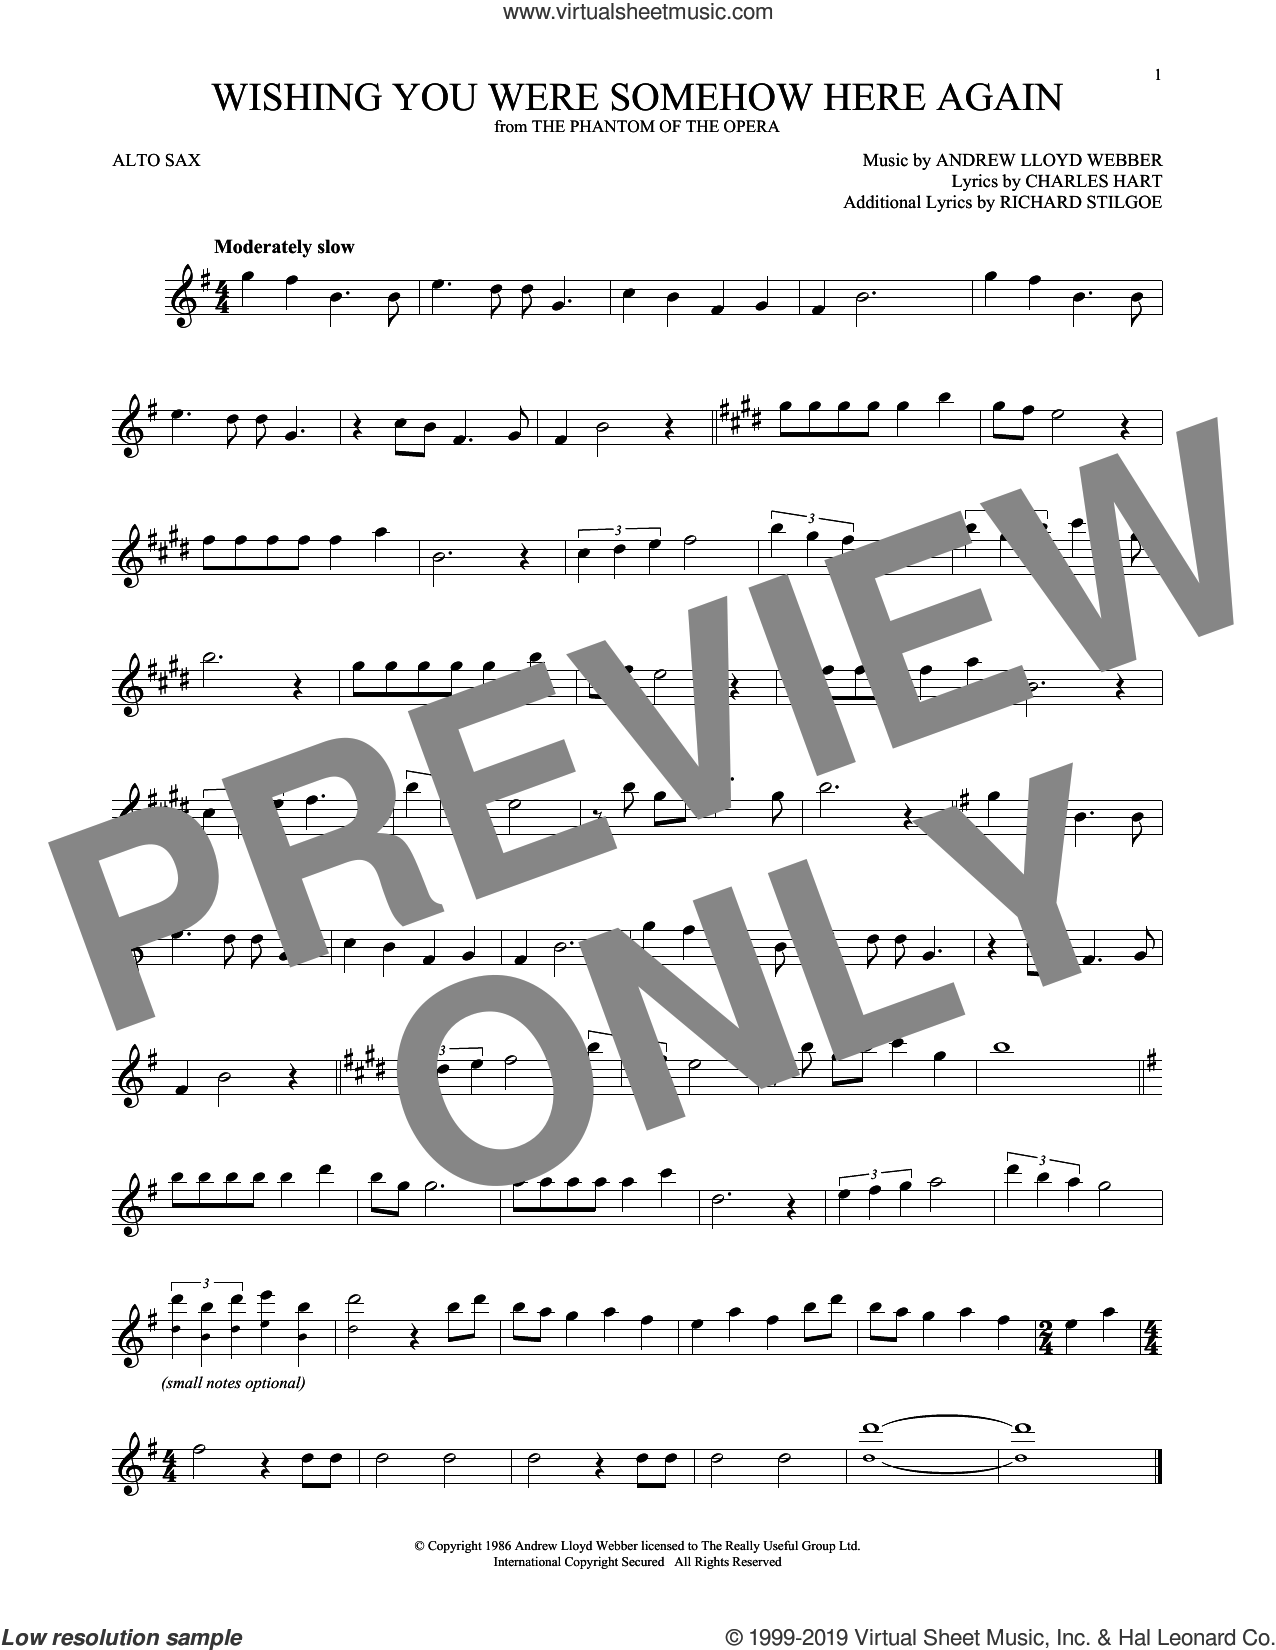 Wishing You Were Somehow Here Again (from The Phantom Of The Opera) sheet music for alto saxophone solo by Andrew Lloyd Webber, Charles Hart and Richard Stilgoe, intermediate skill level